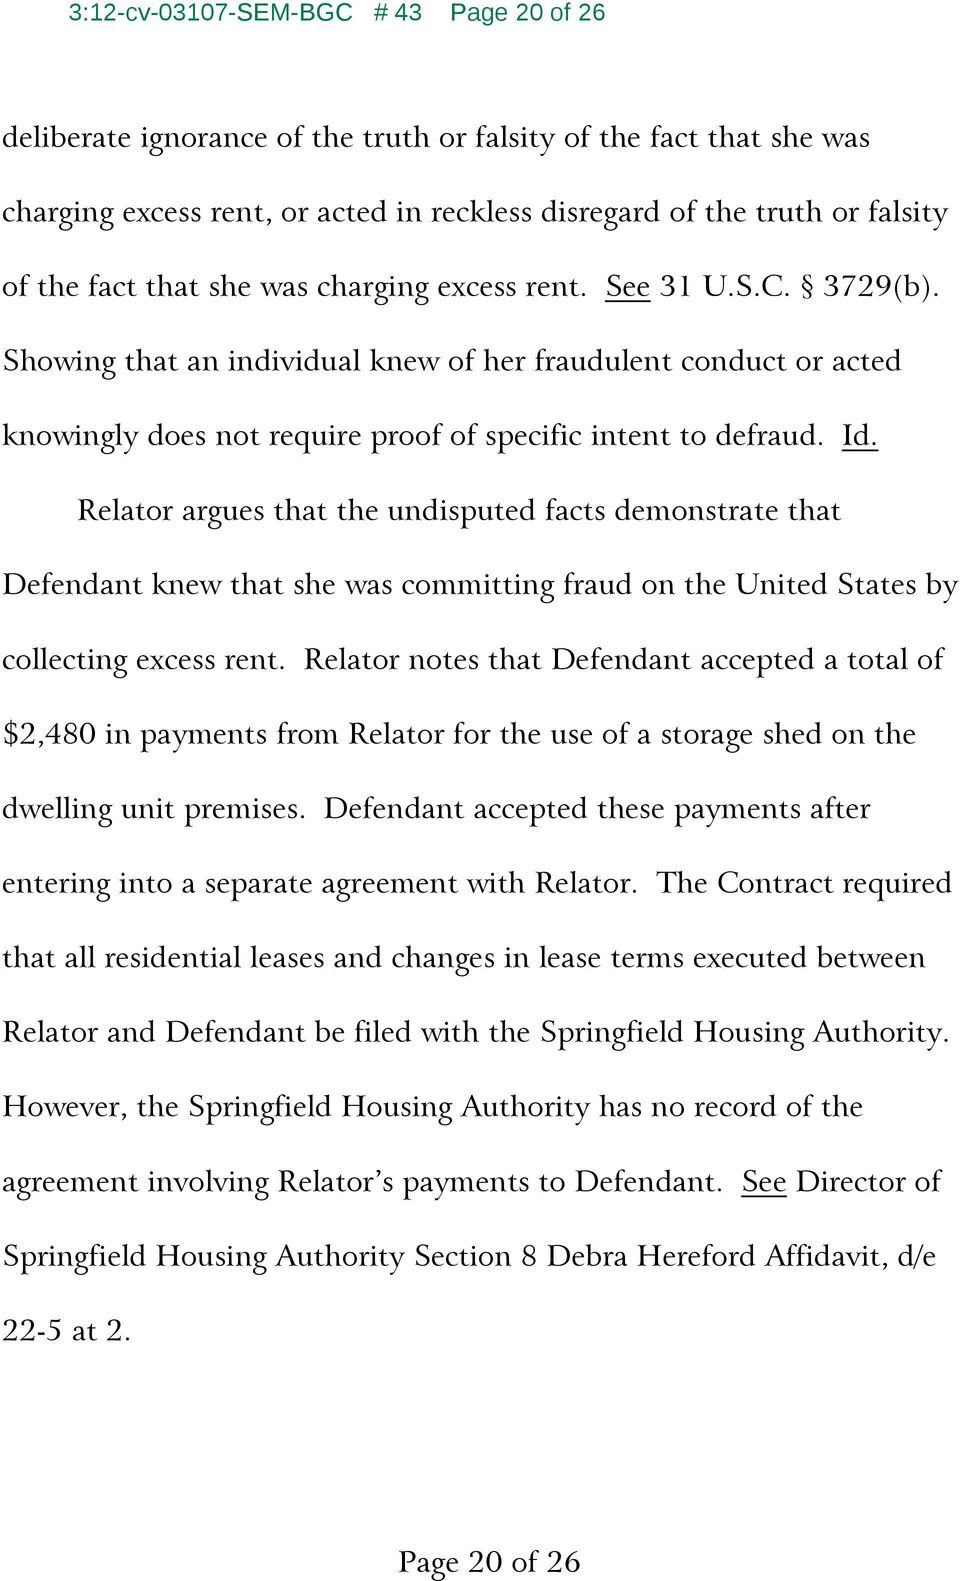 Relator argues that the undisputed facts demonstrate that Defendant knew that she was committing fraud on the United States by collecting excess rent.